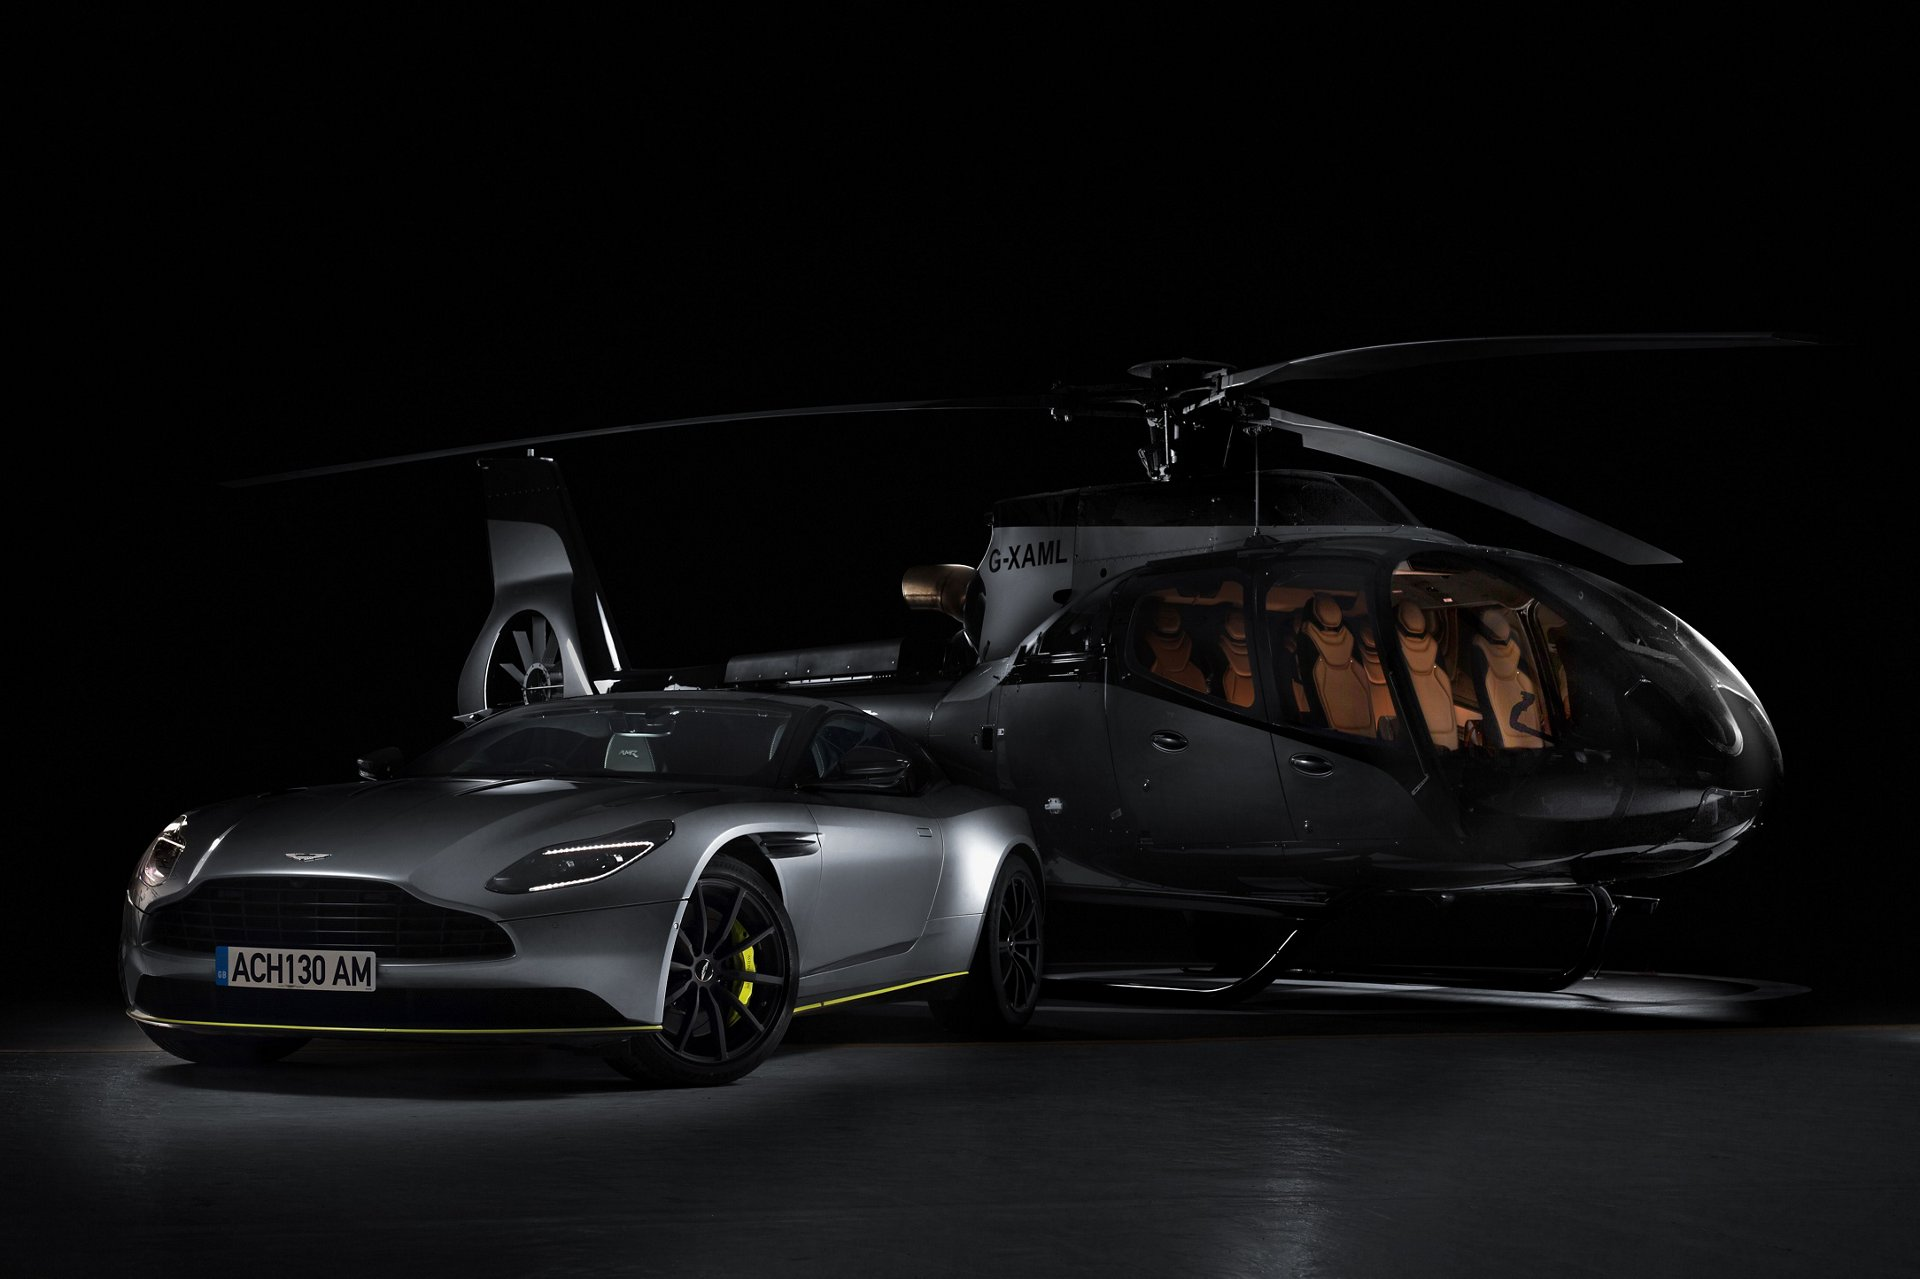 Airbus teams up with Aston Martin to launch the ACH130 Aston Martin Edition helicopter - Helicopters - Airbus